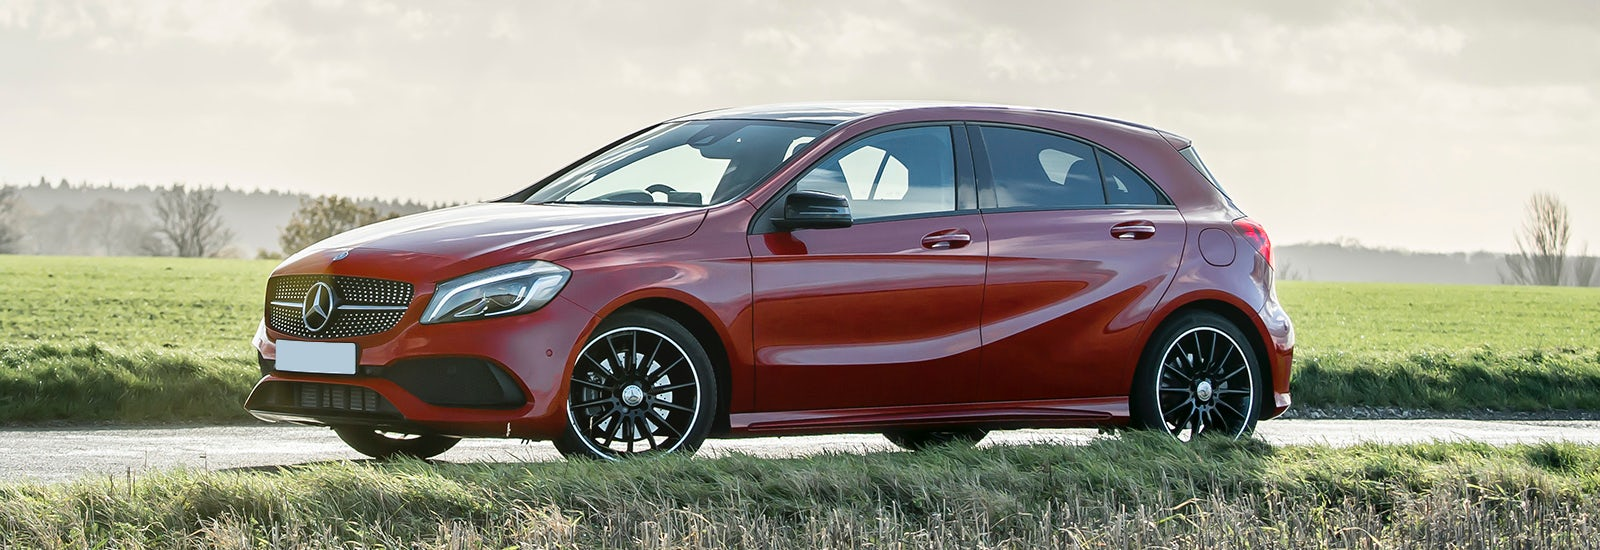 mercedes a class dimensions uk exterior and interior sizes carwow. Black Bedroom Furniture Sets. Home Design Ideas